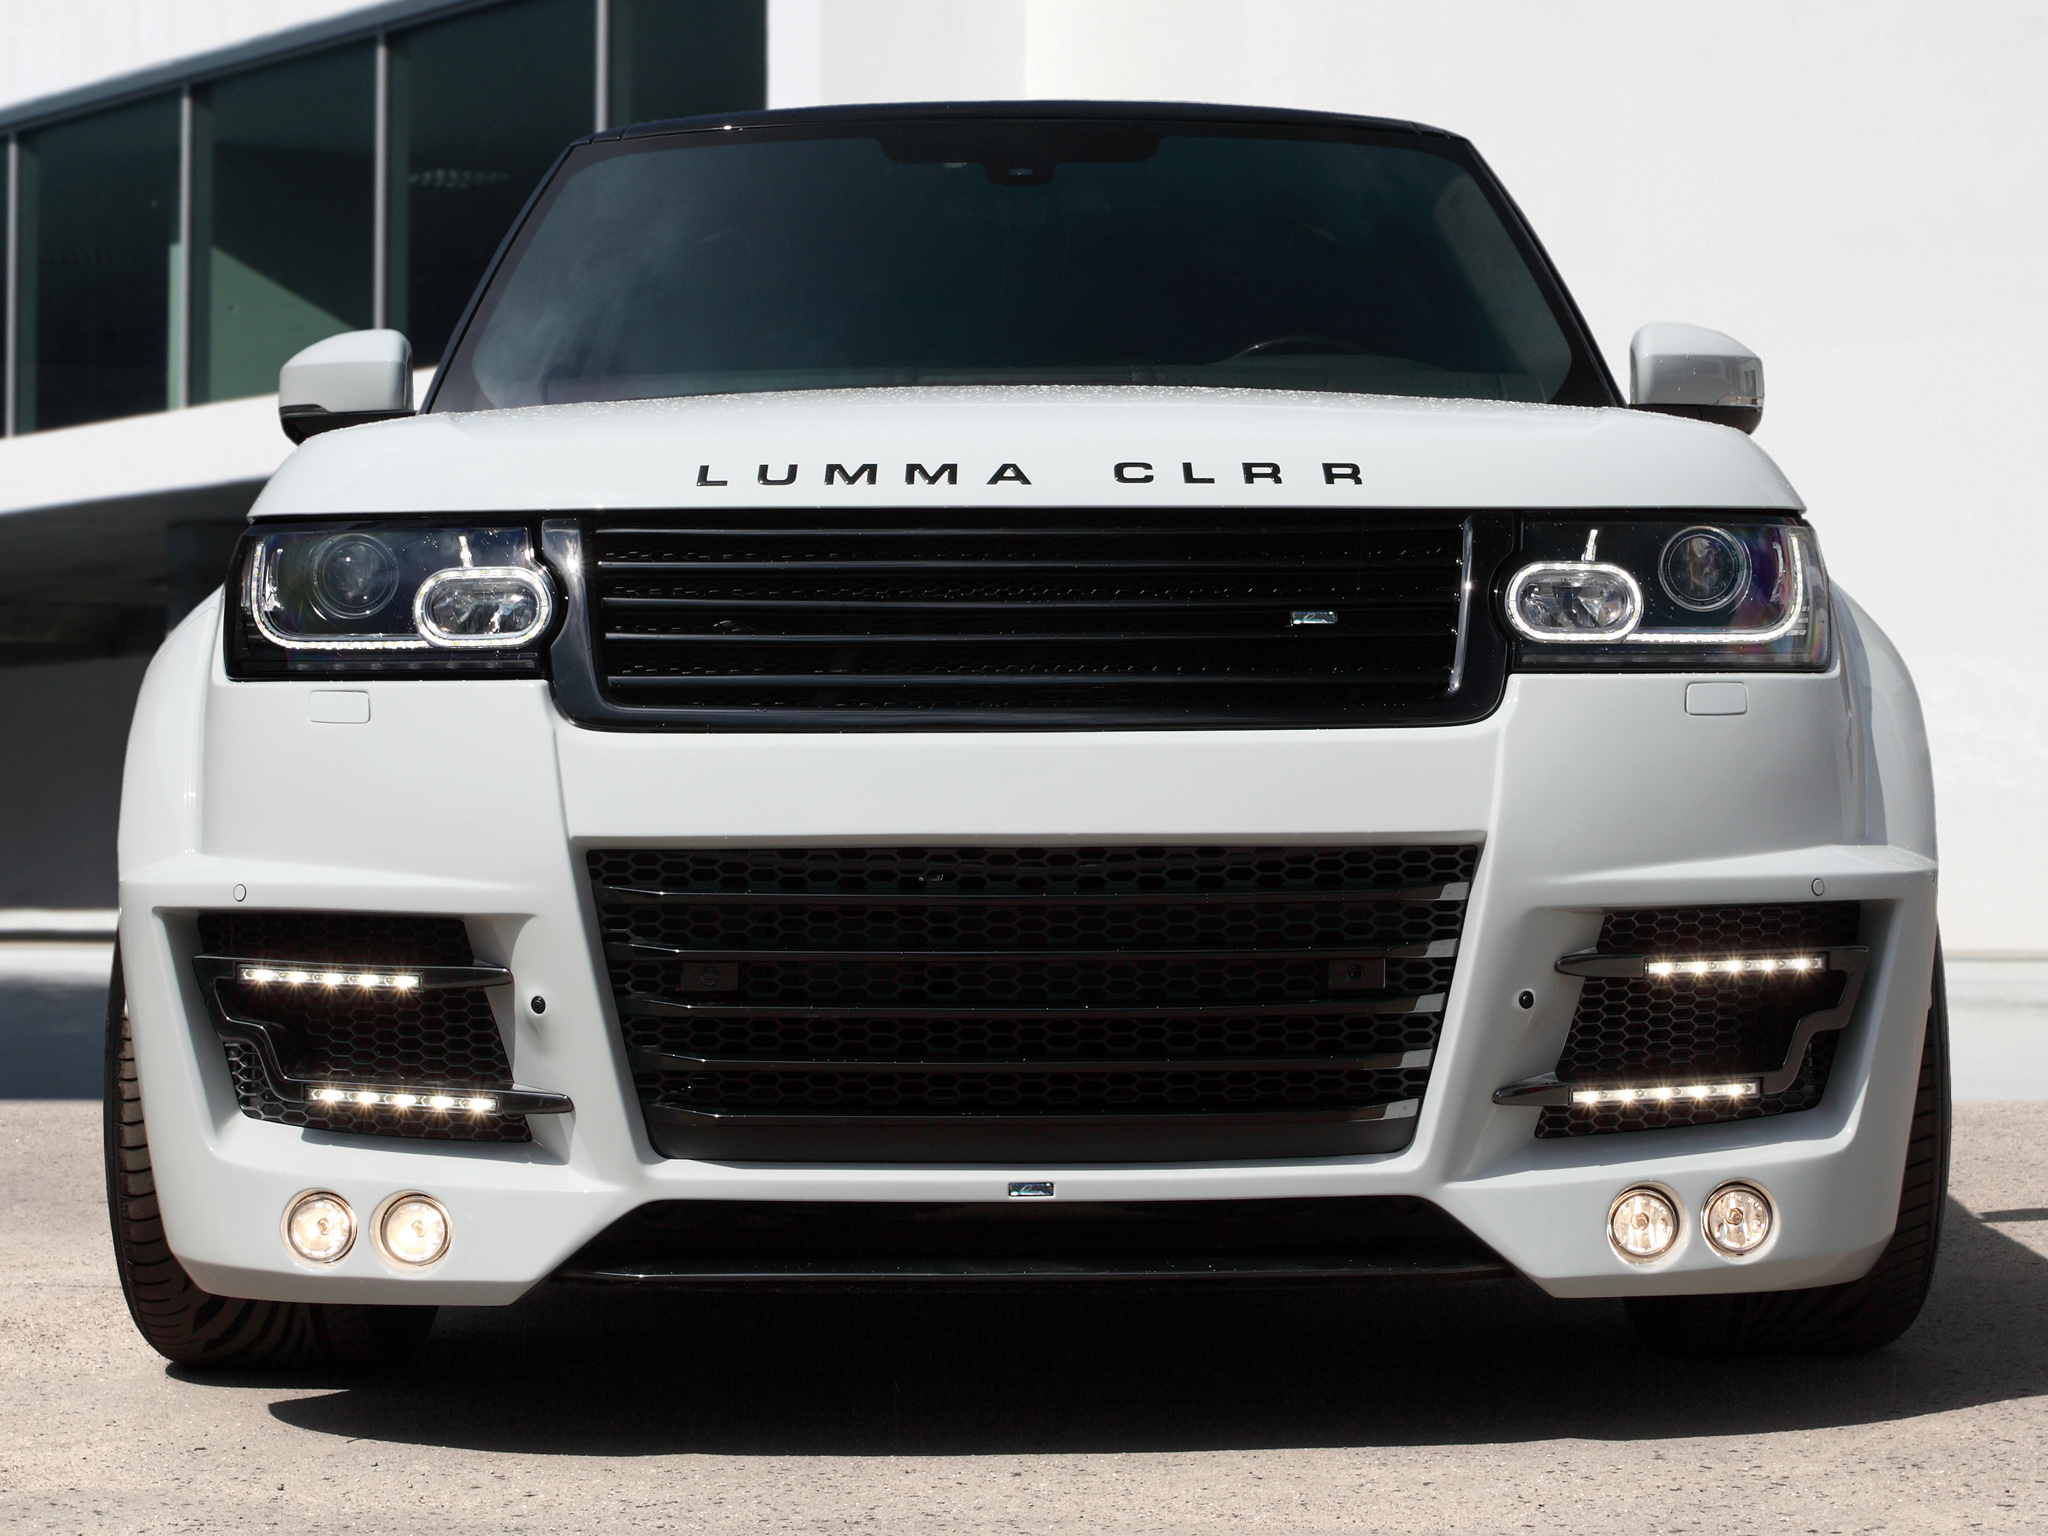 2013 lumma clr r range rover supercharged tuning suv d wallpaper